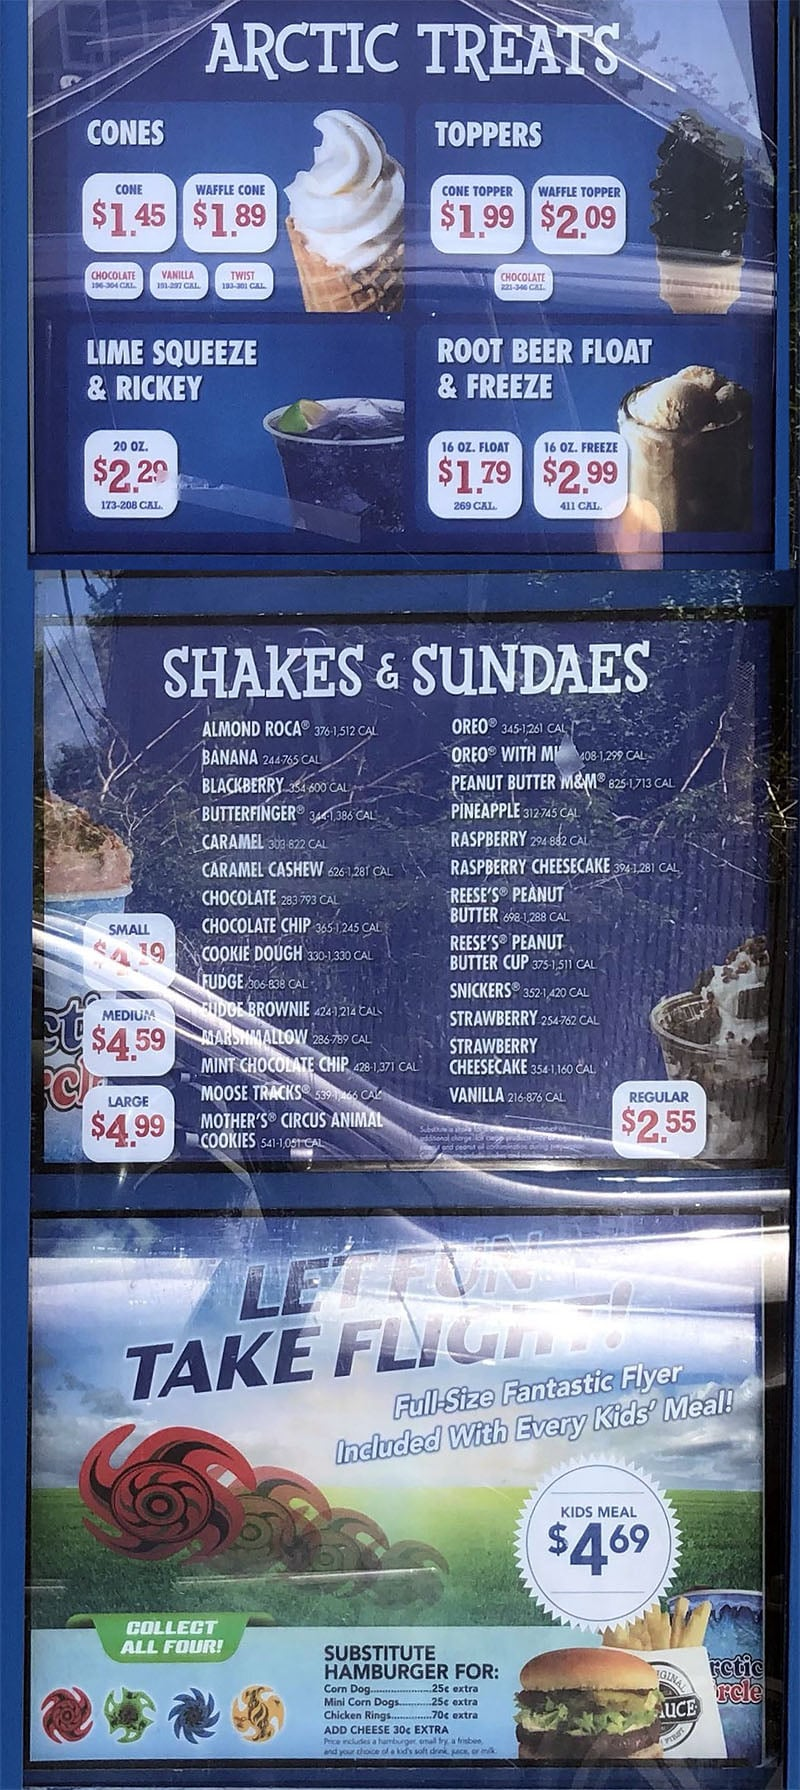 Arctic Circle menu - treats, shakes, sundaes